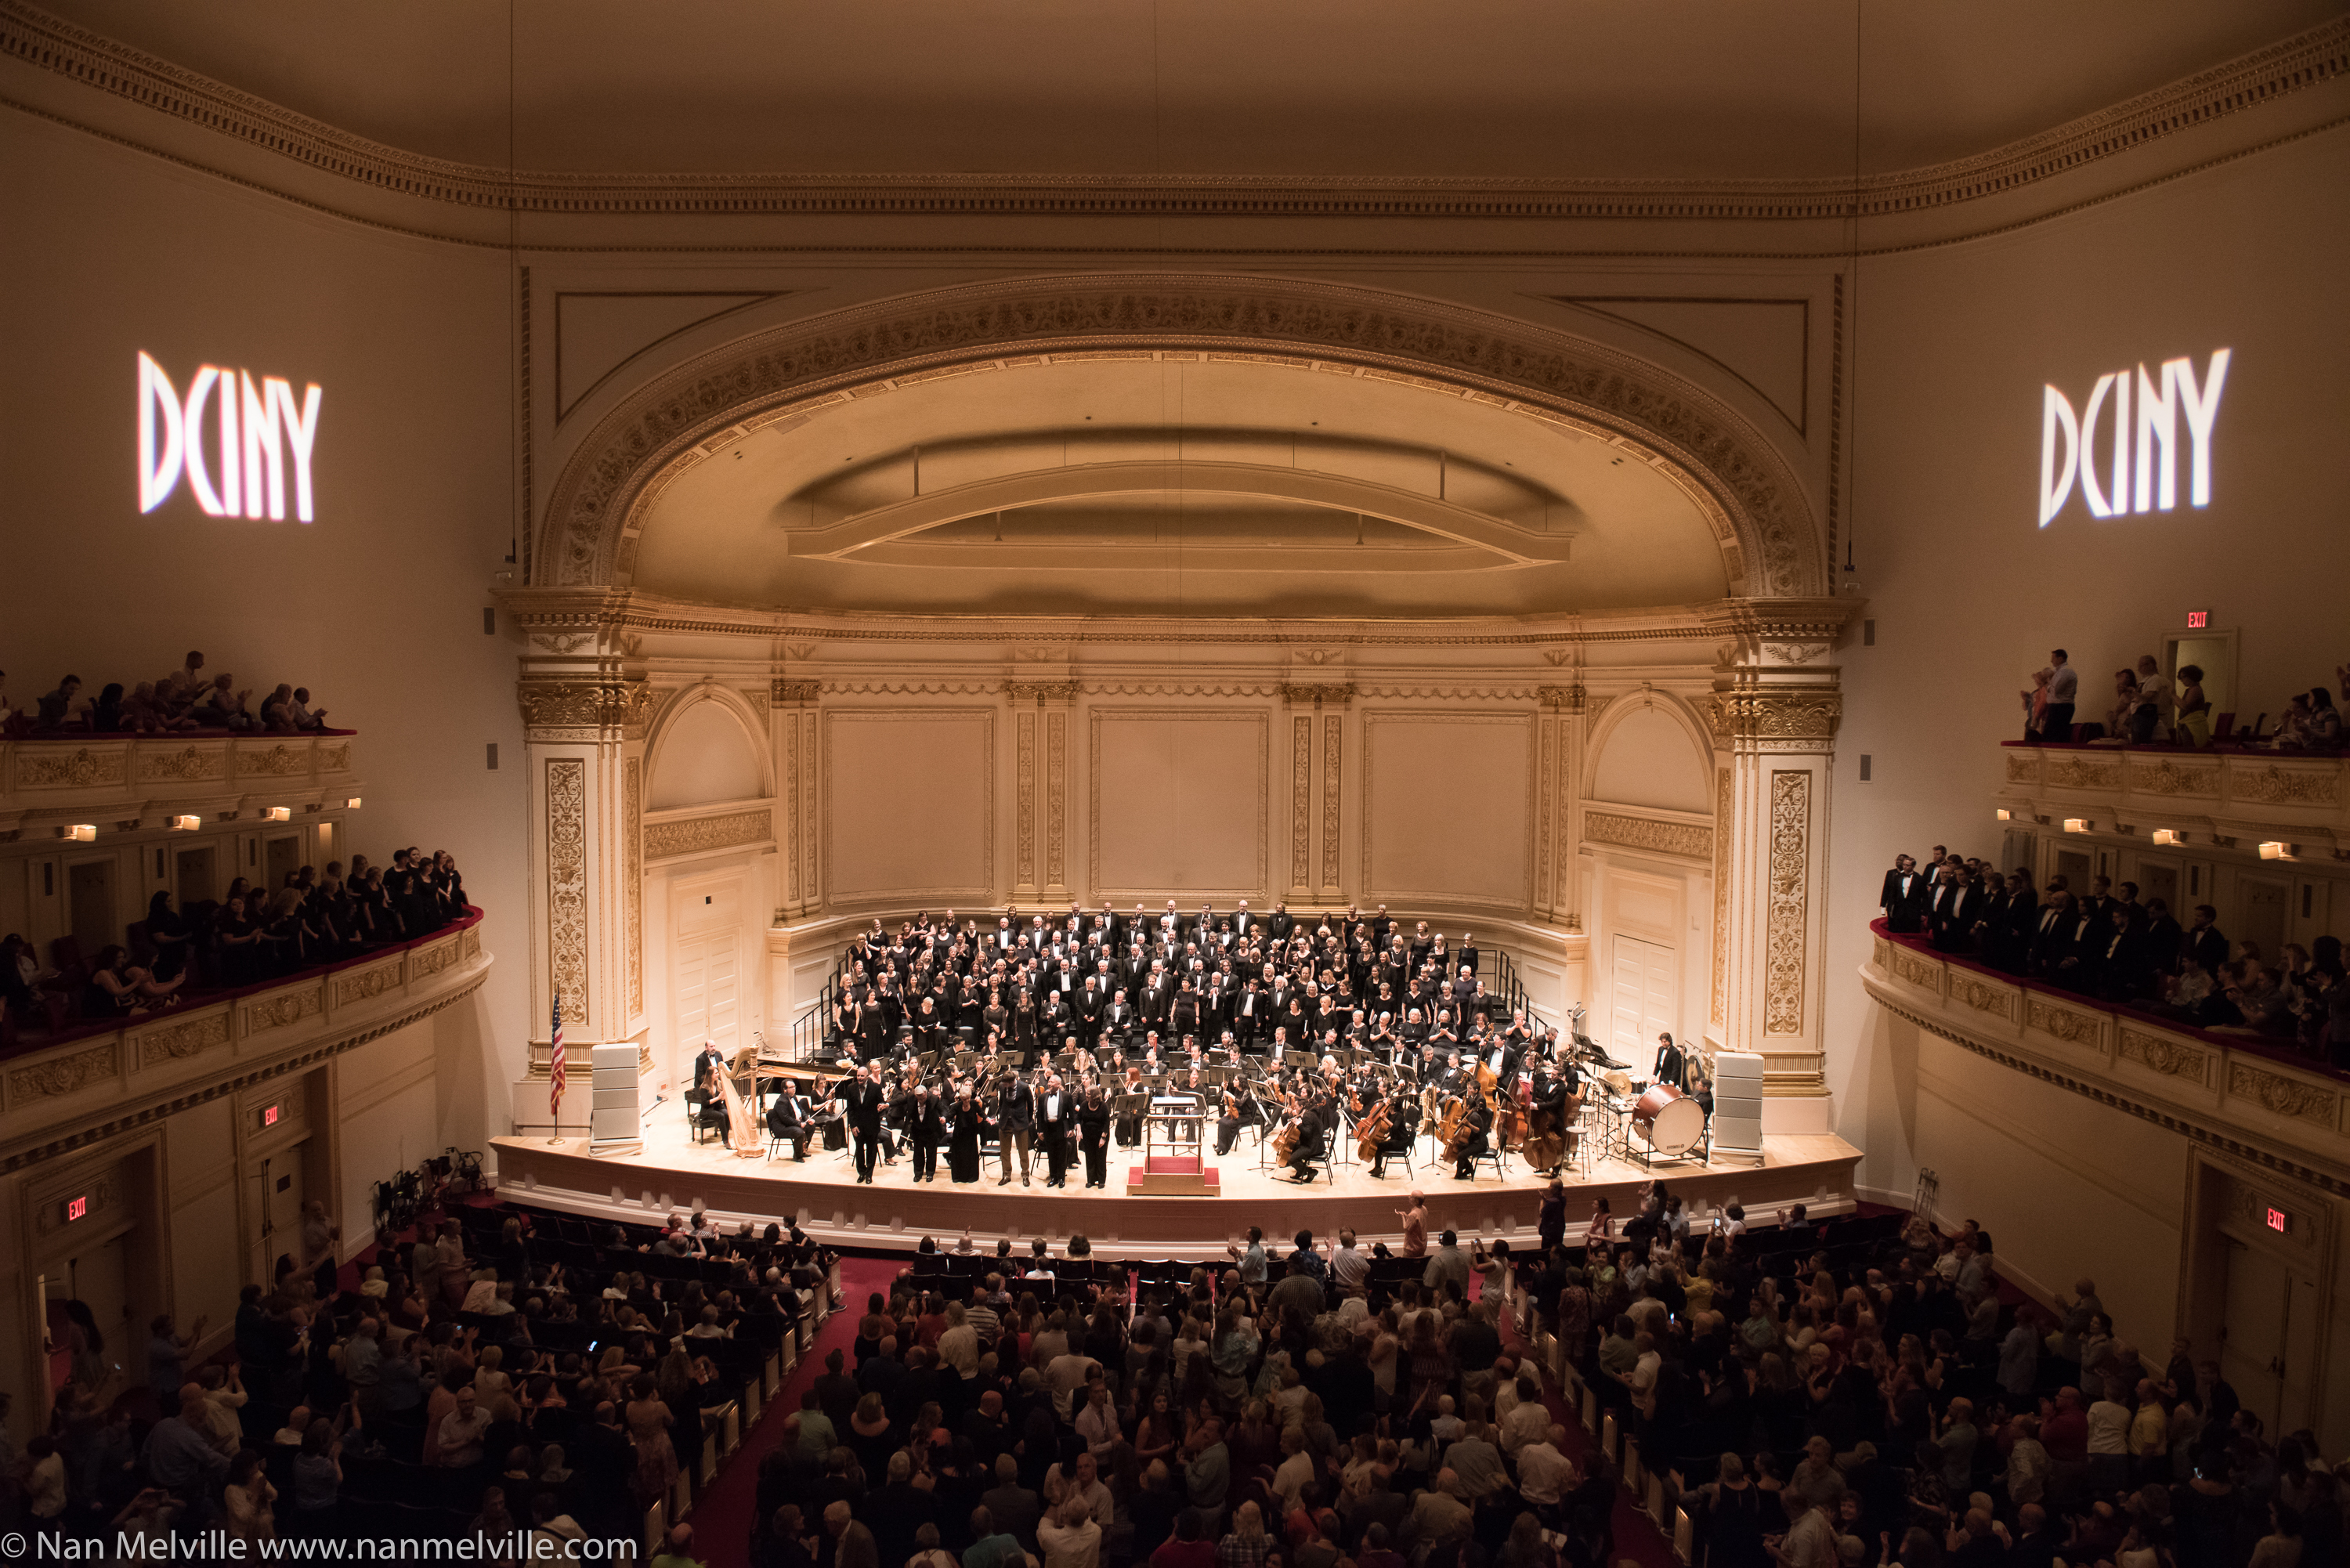 Distinguished Concerts International New York (DCINY) presents Sancta Civitas & Dona Nobis Pacem: The Music of Vaughan Williams in Review